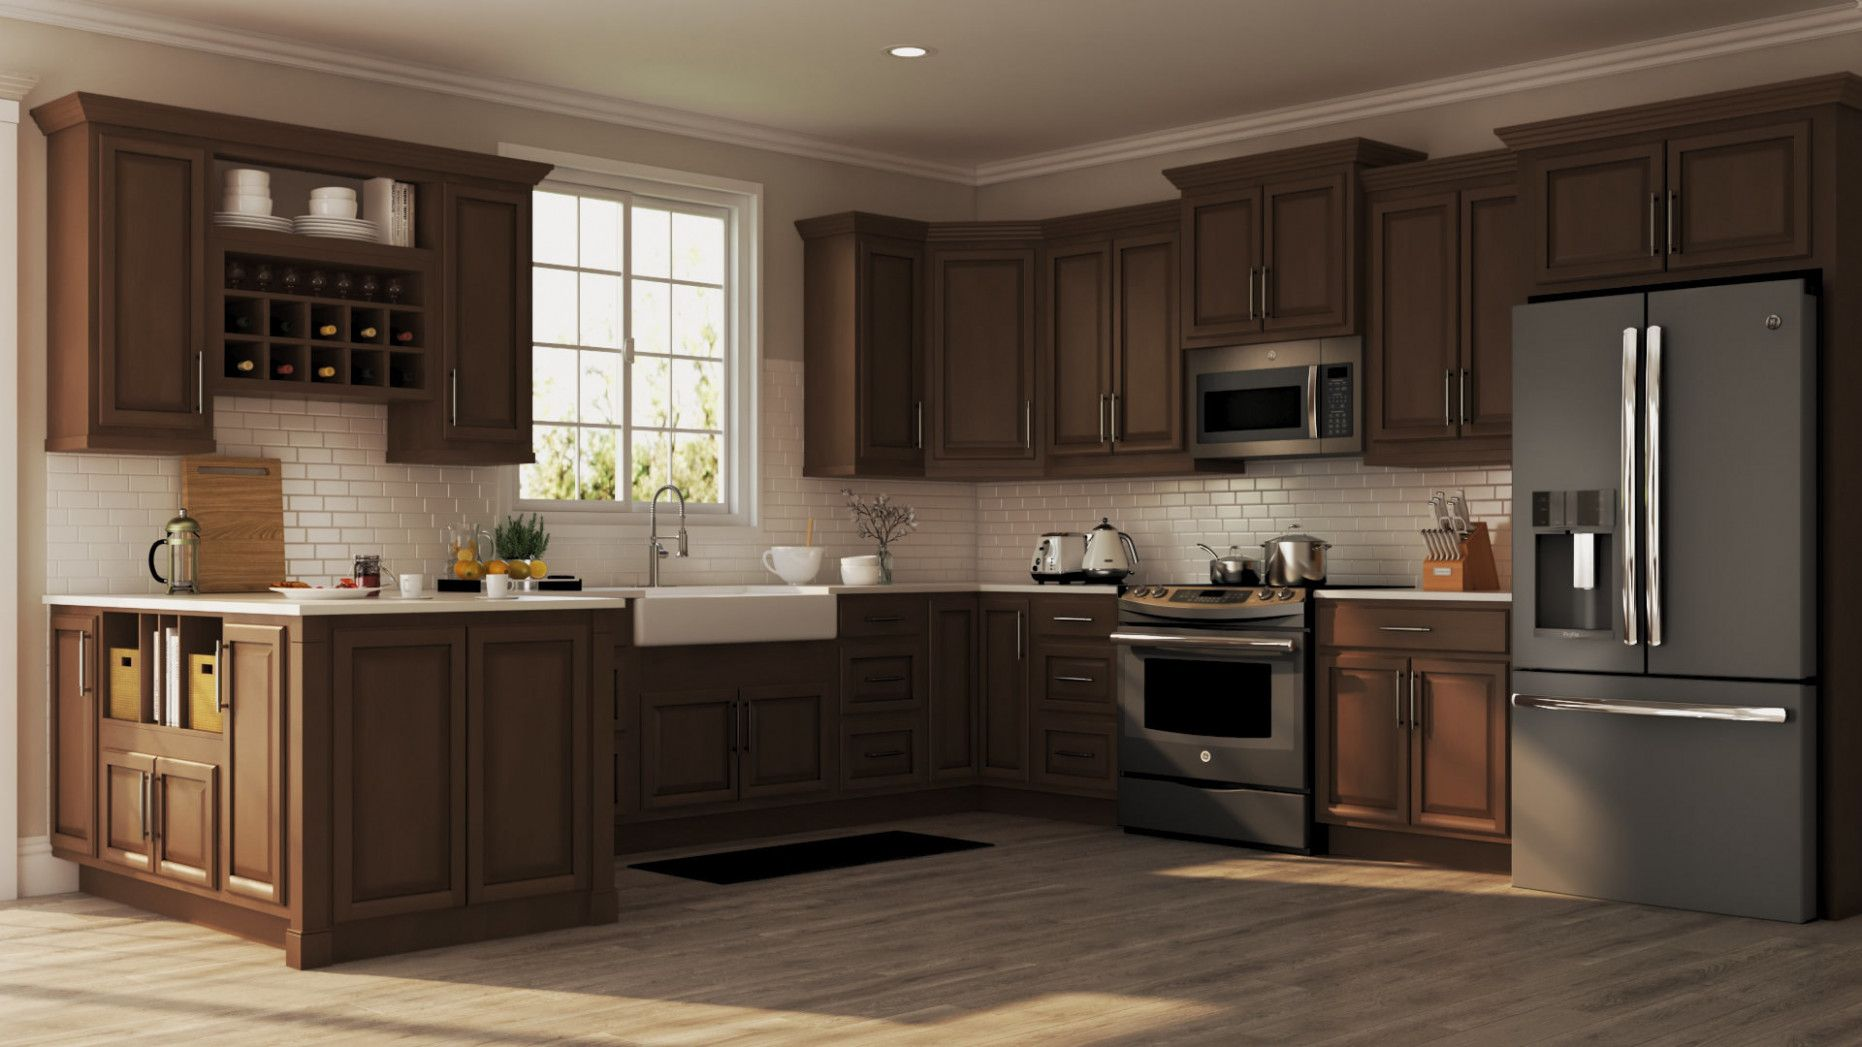 Best 13 Design Home Depot Stock Kitchen Cabinets Di 2020 400 x 300